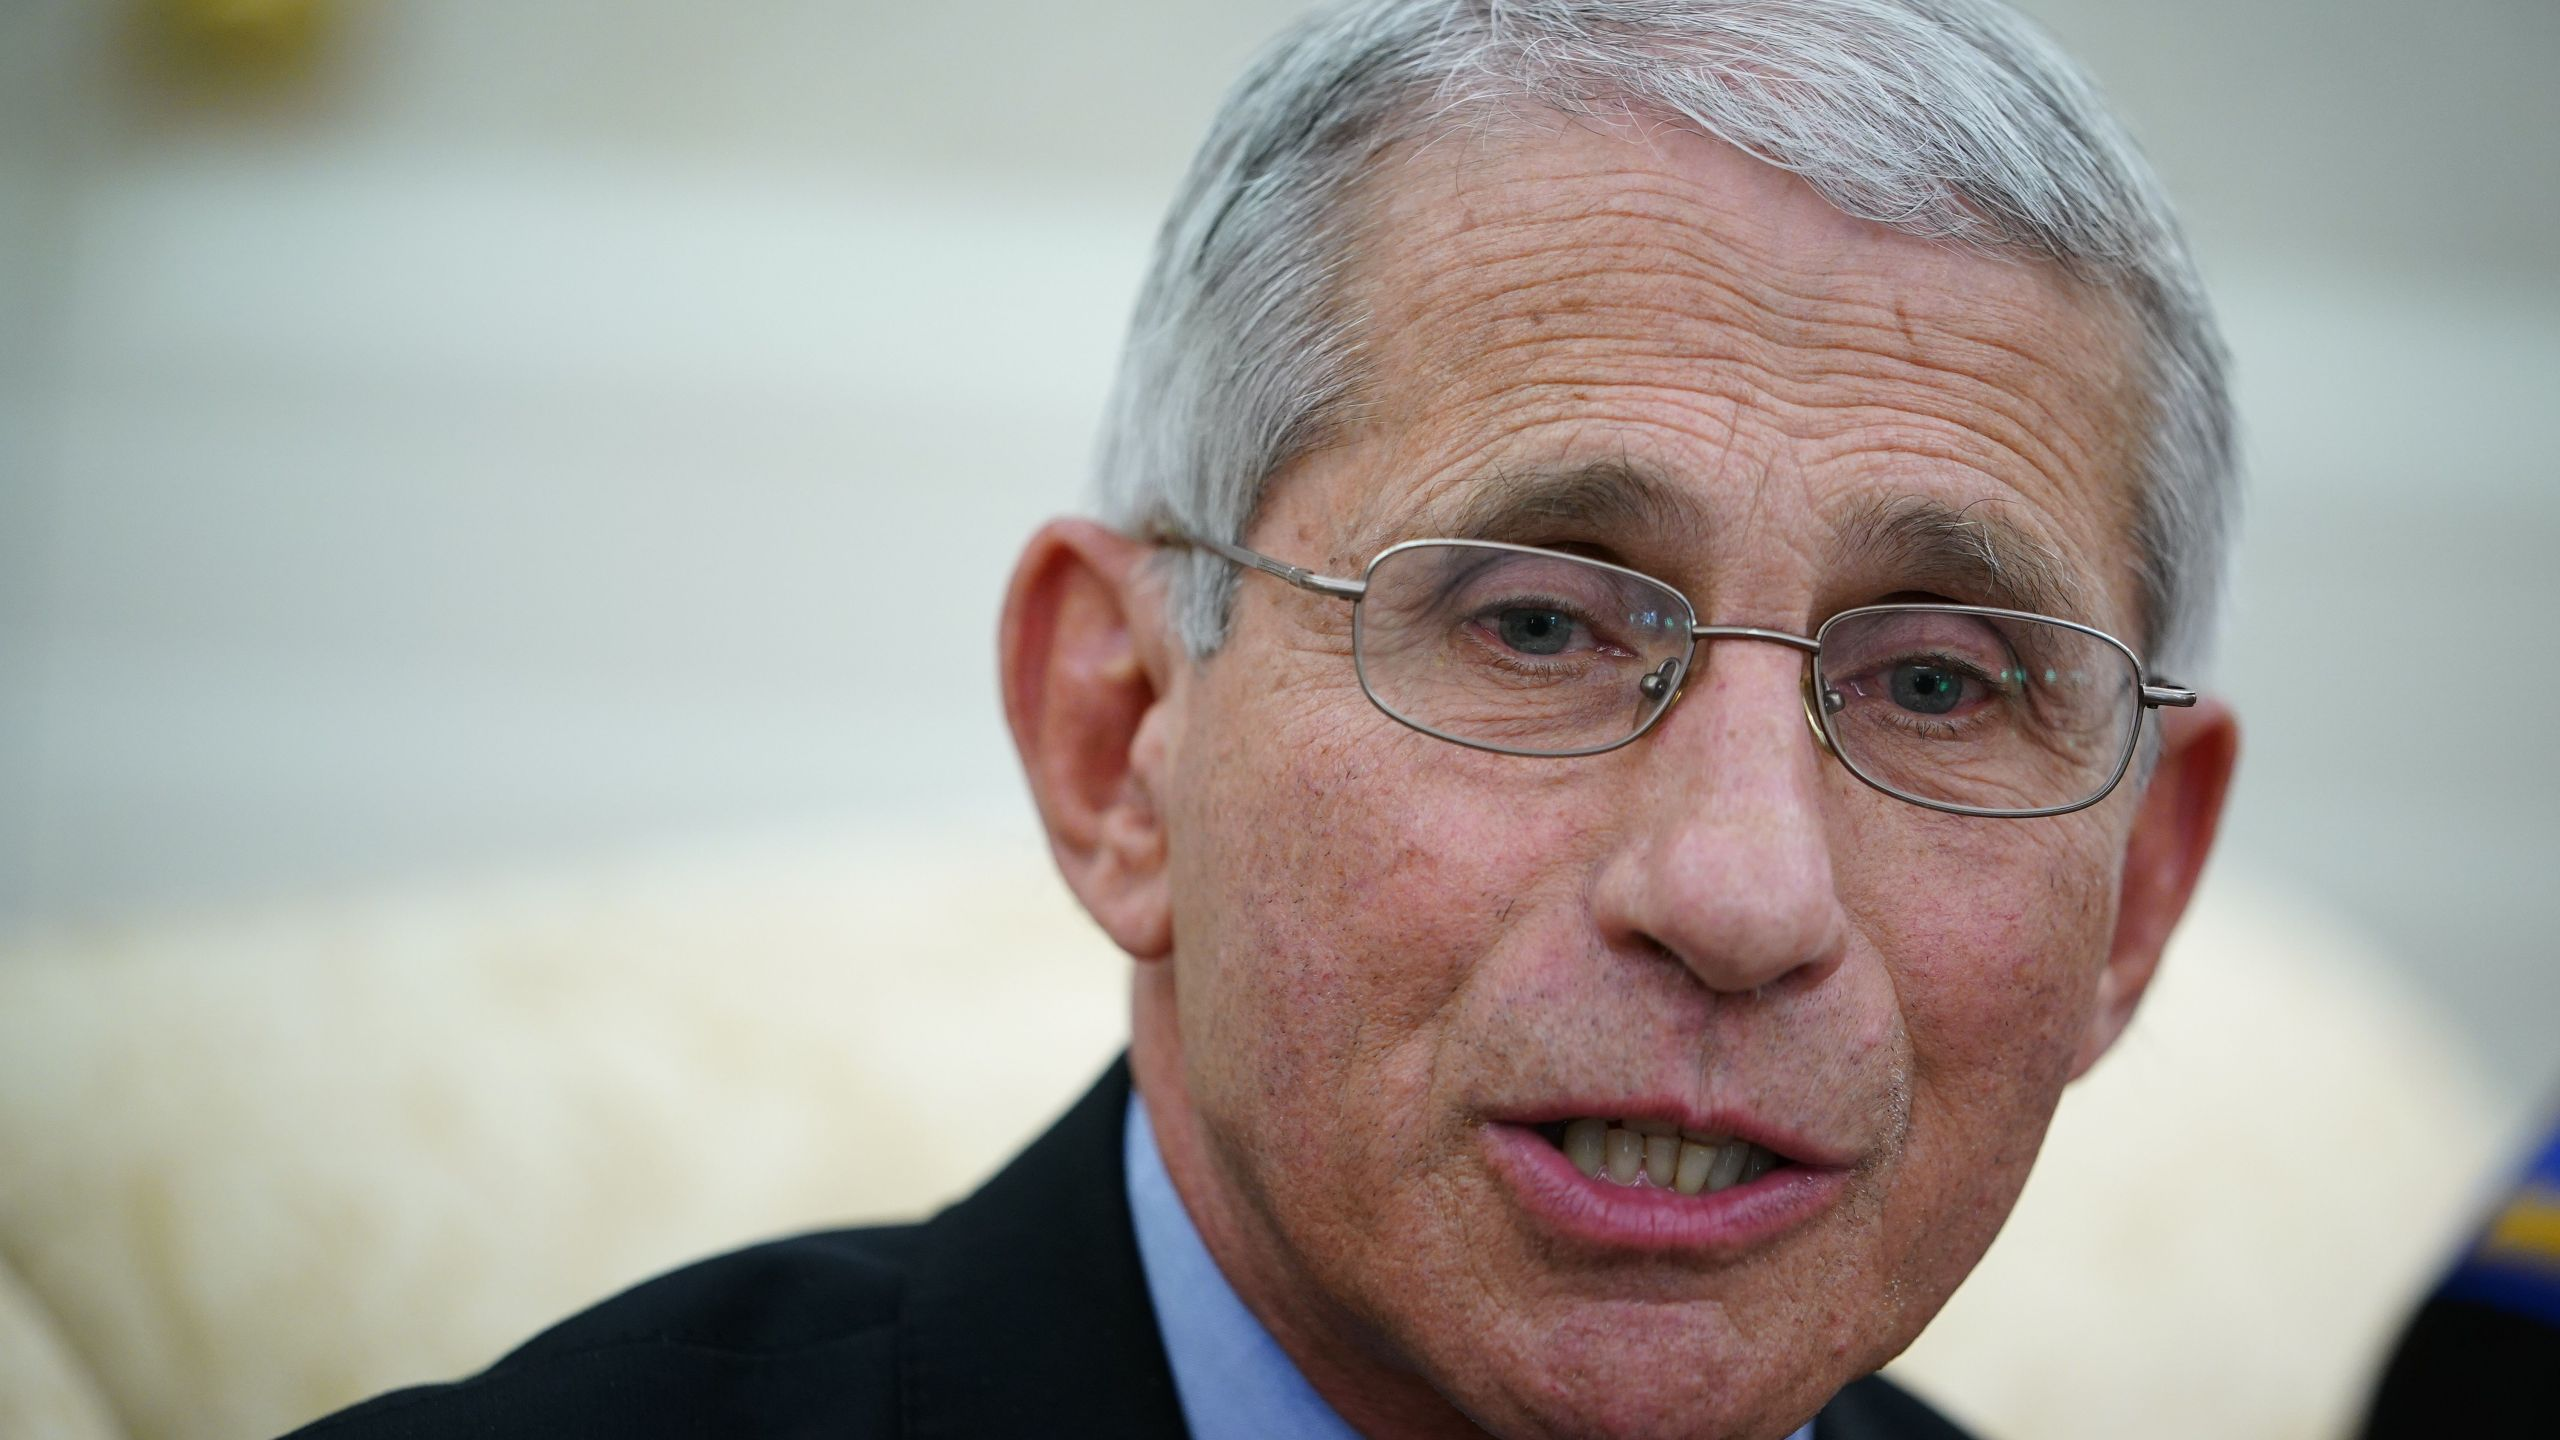 Dr. Anthony Fauci , director of the National Institute of Allergy and Infectious Diseases speaks during a meeting with US President Donald Trump and Louisiana Governor John Bel Edwards D-LA in the Oval Office of the White House in Washington, DC on April 29, 2020. (MANDEL NGAN/AFP via Getty Images)